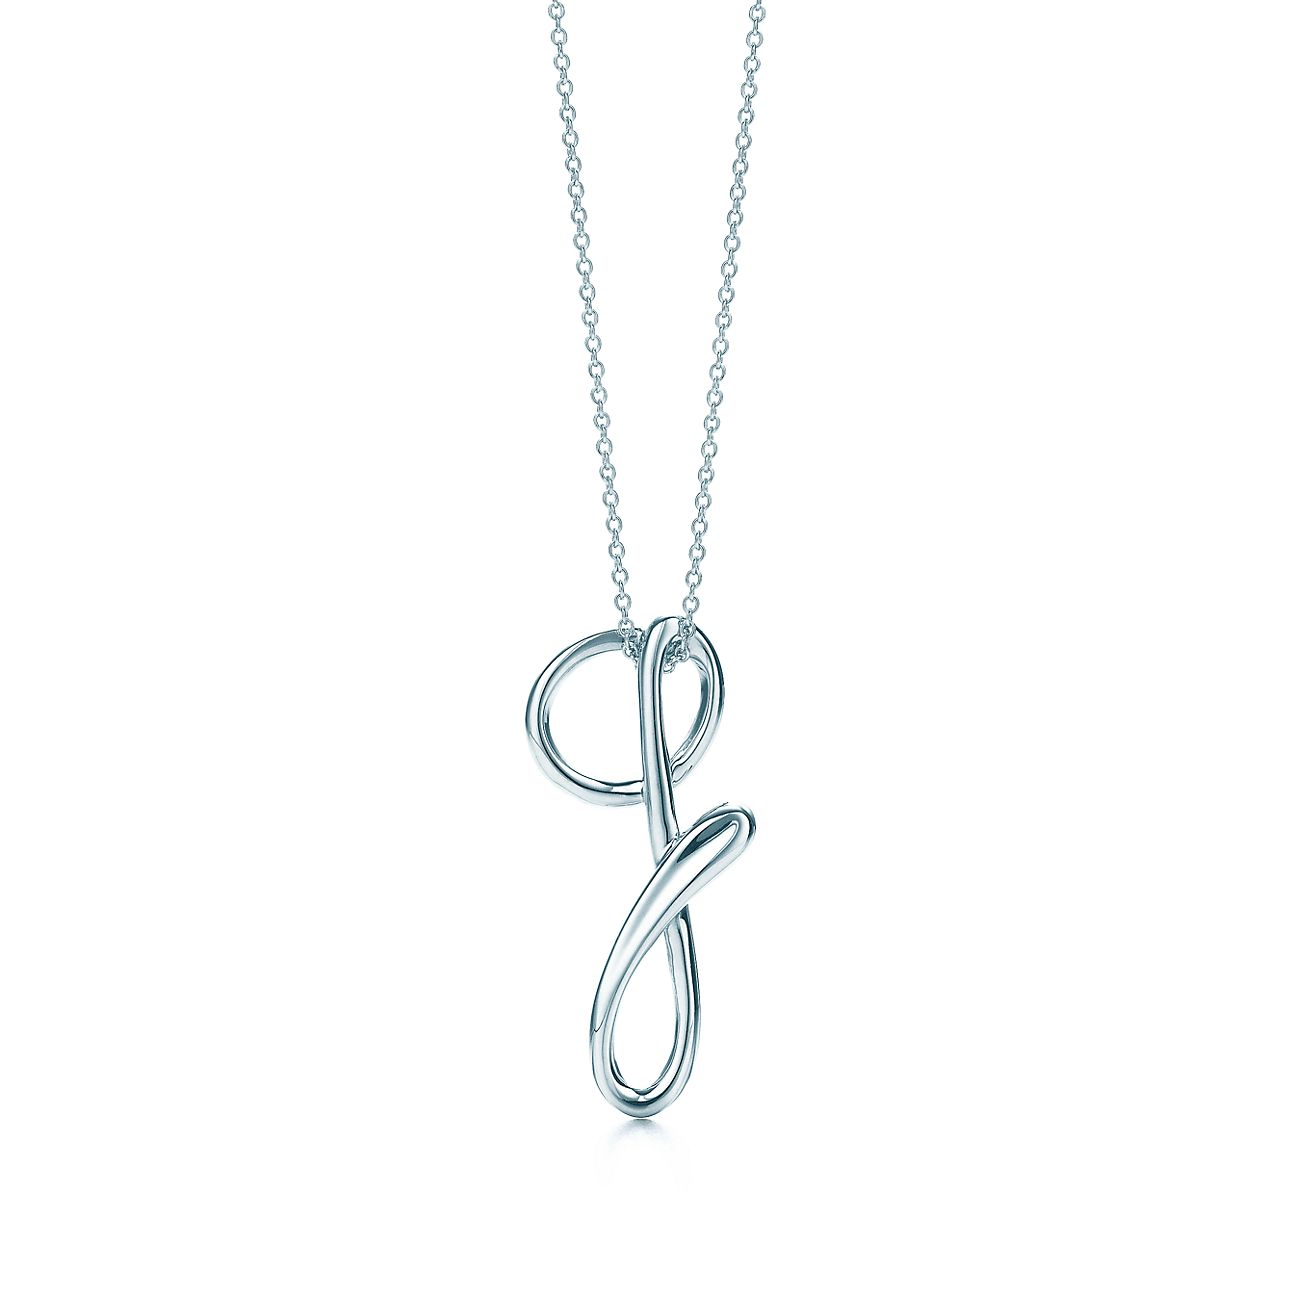 Tiffany Charms alphabet charm in sterling silver Letters A-Z available - Size Q Tiffany & Co.